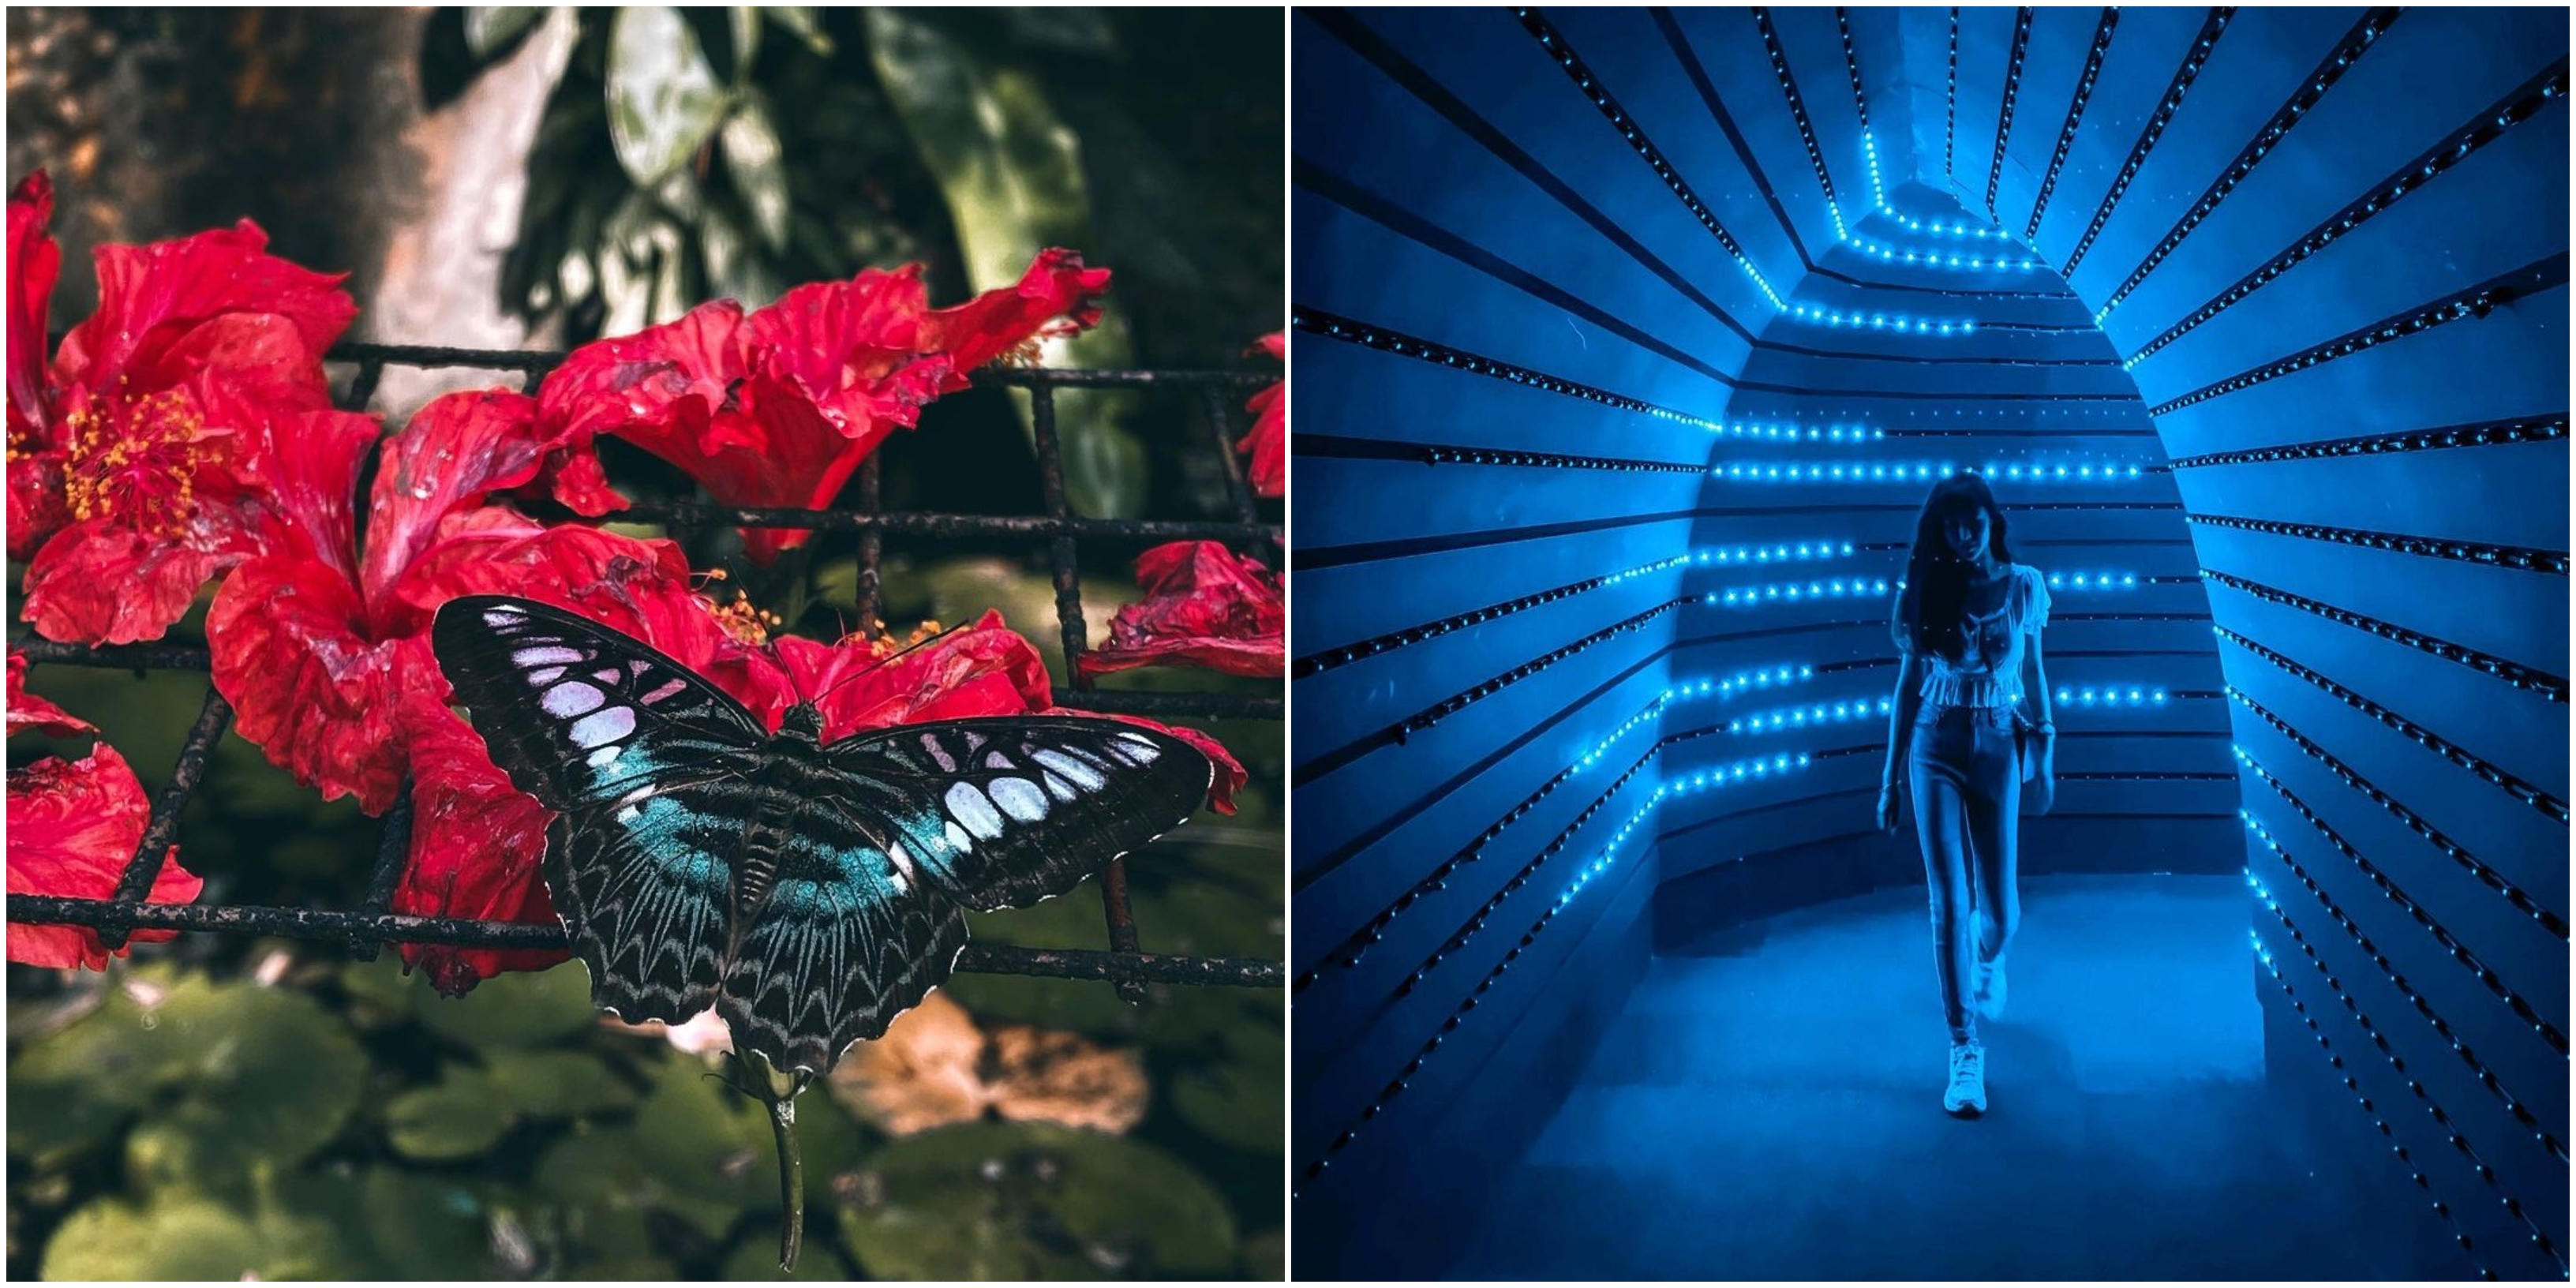 This butterfly garden in Penang is straight out of a magical fantasy movie